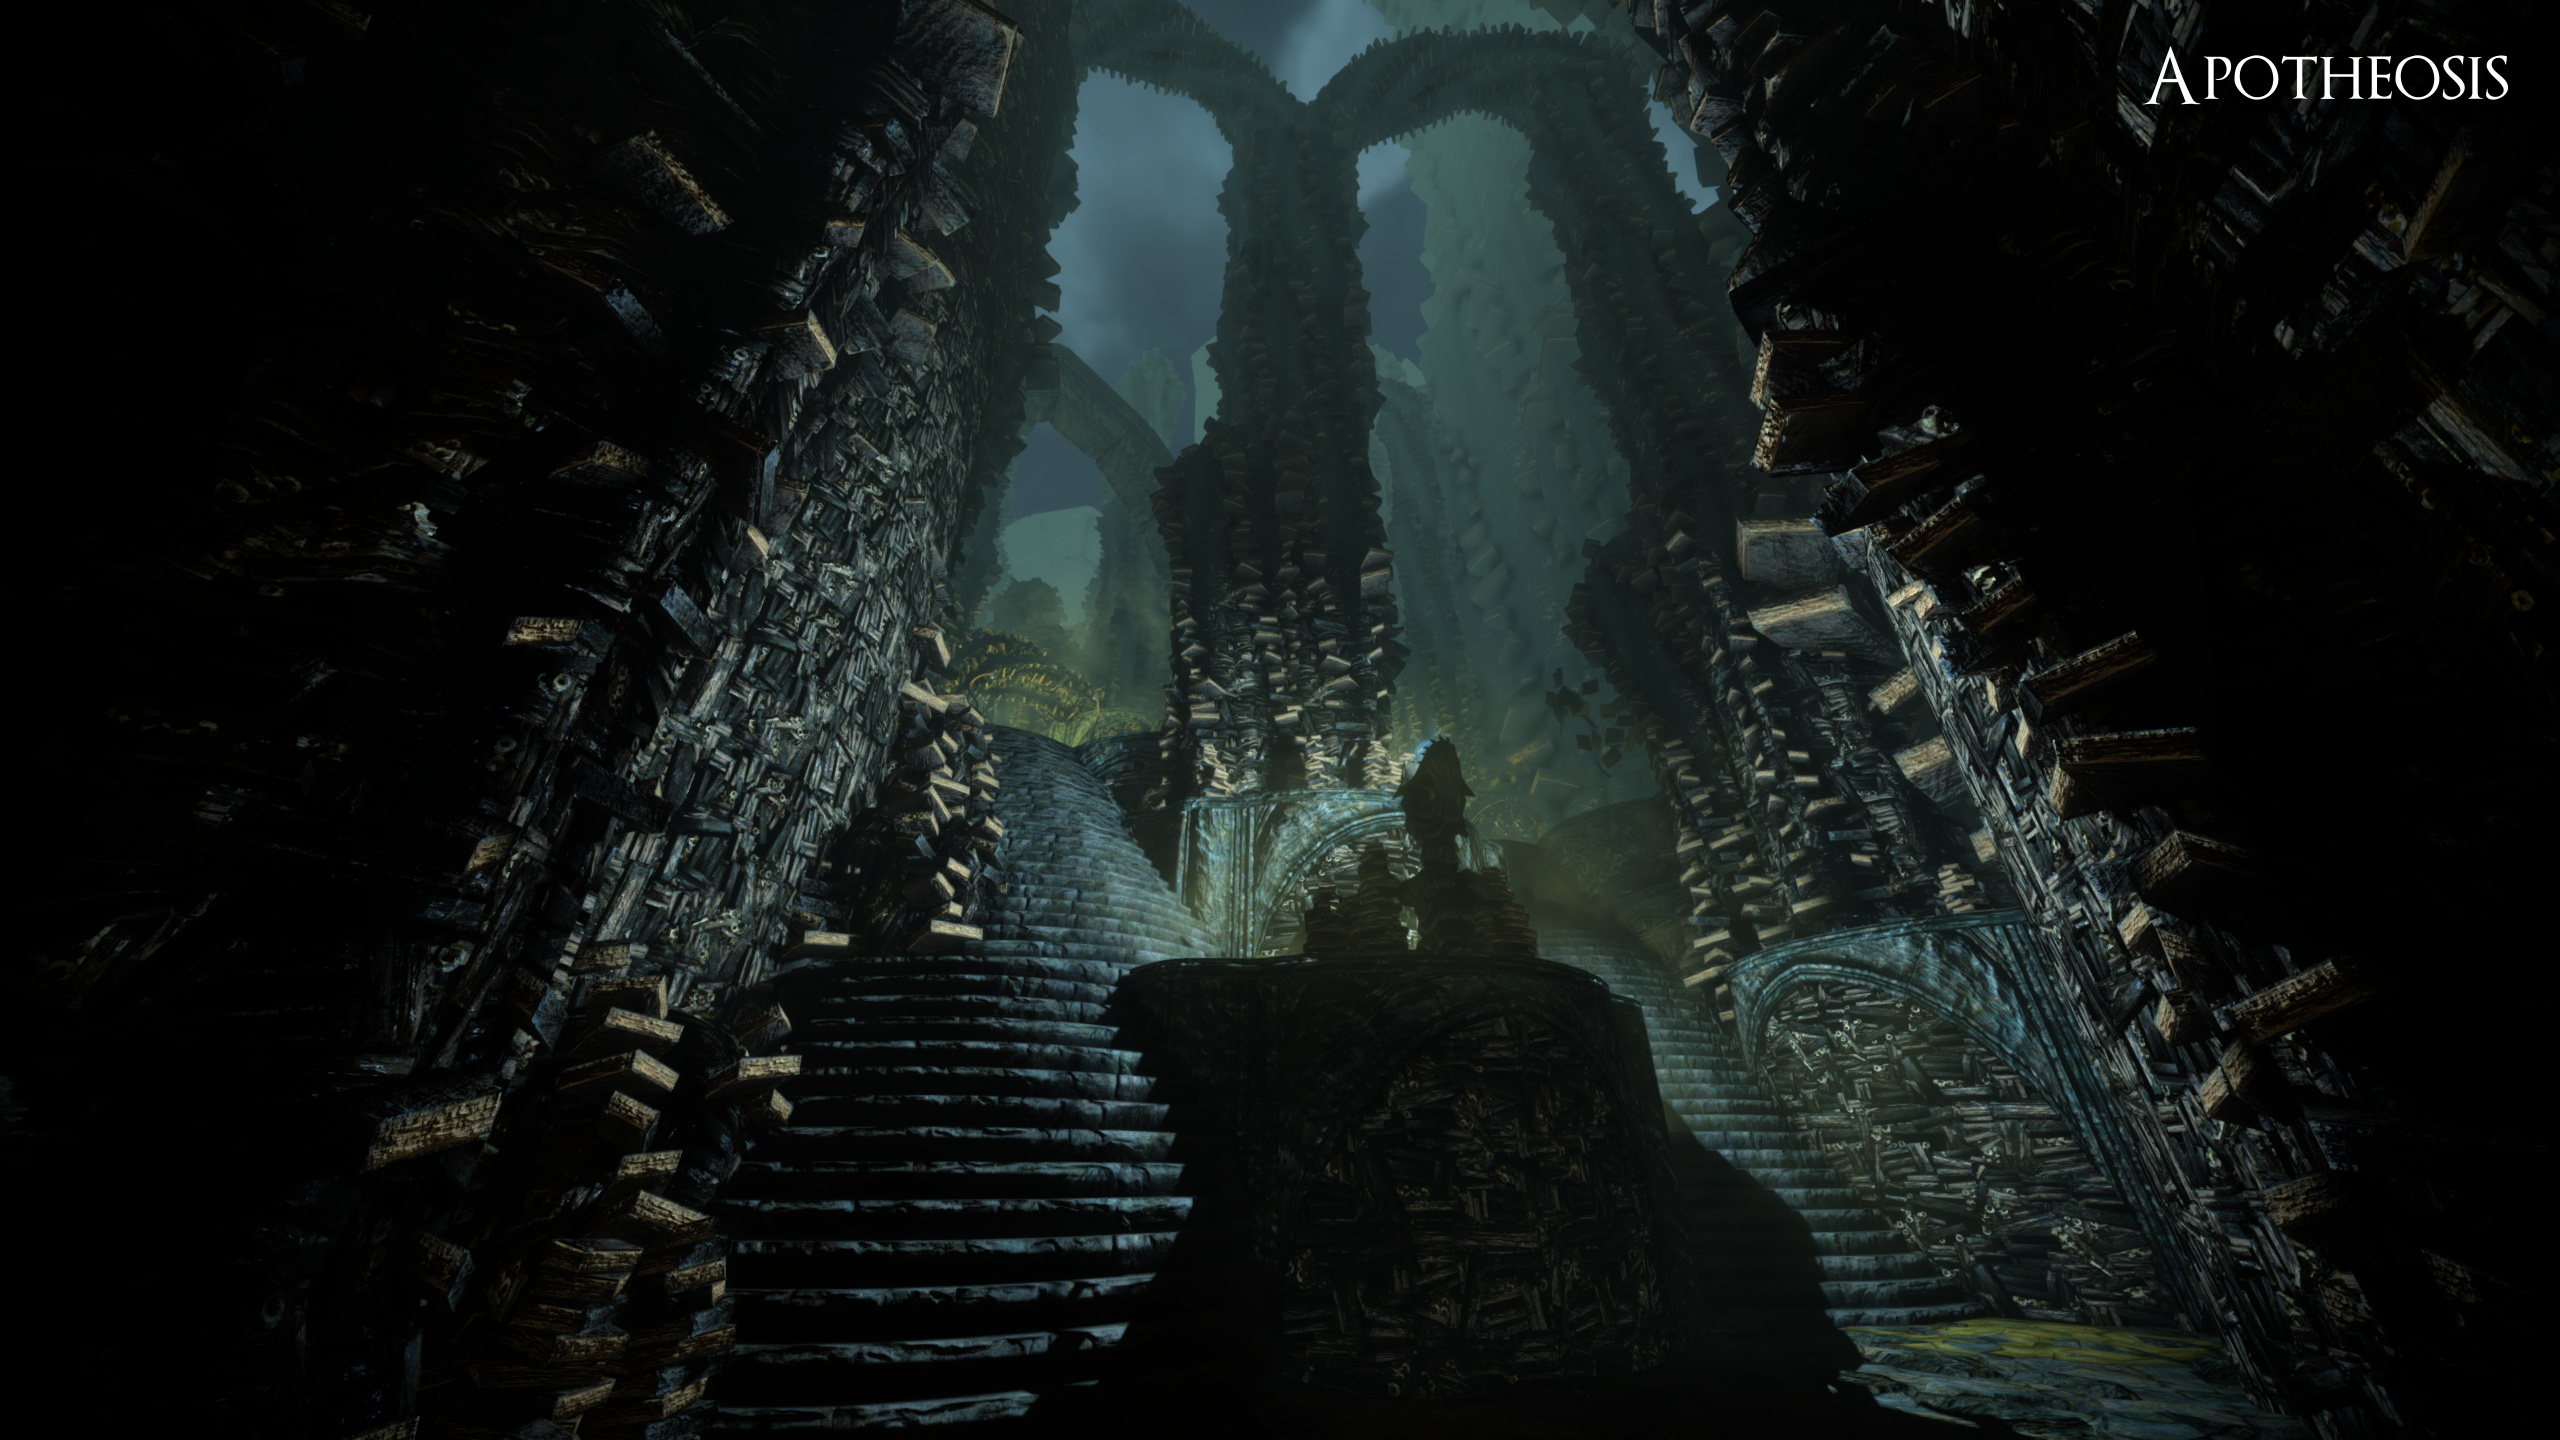 Oblivion Apocrypha The Grand Library In 2020 Apocrypha Grand Library Library Images